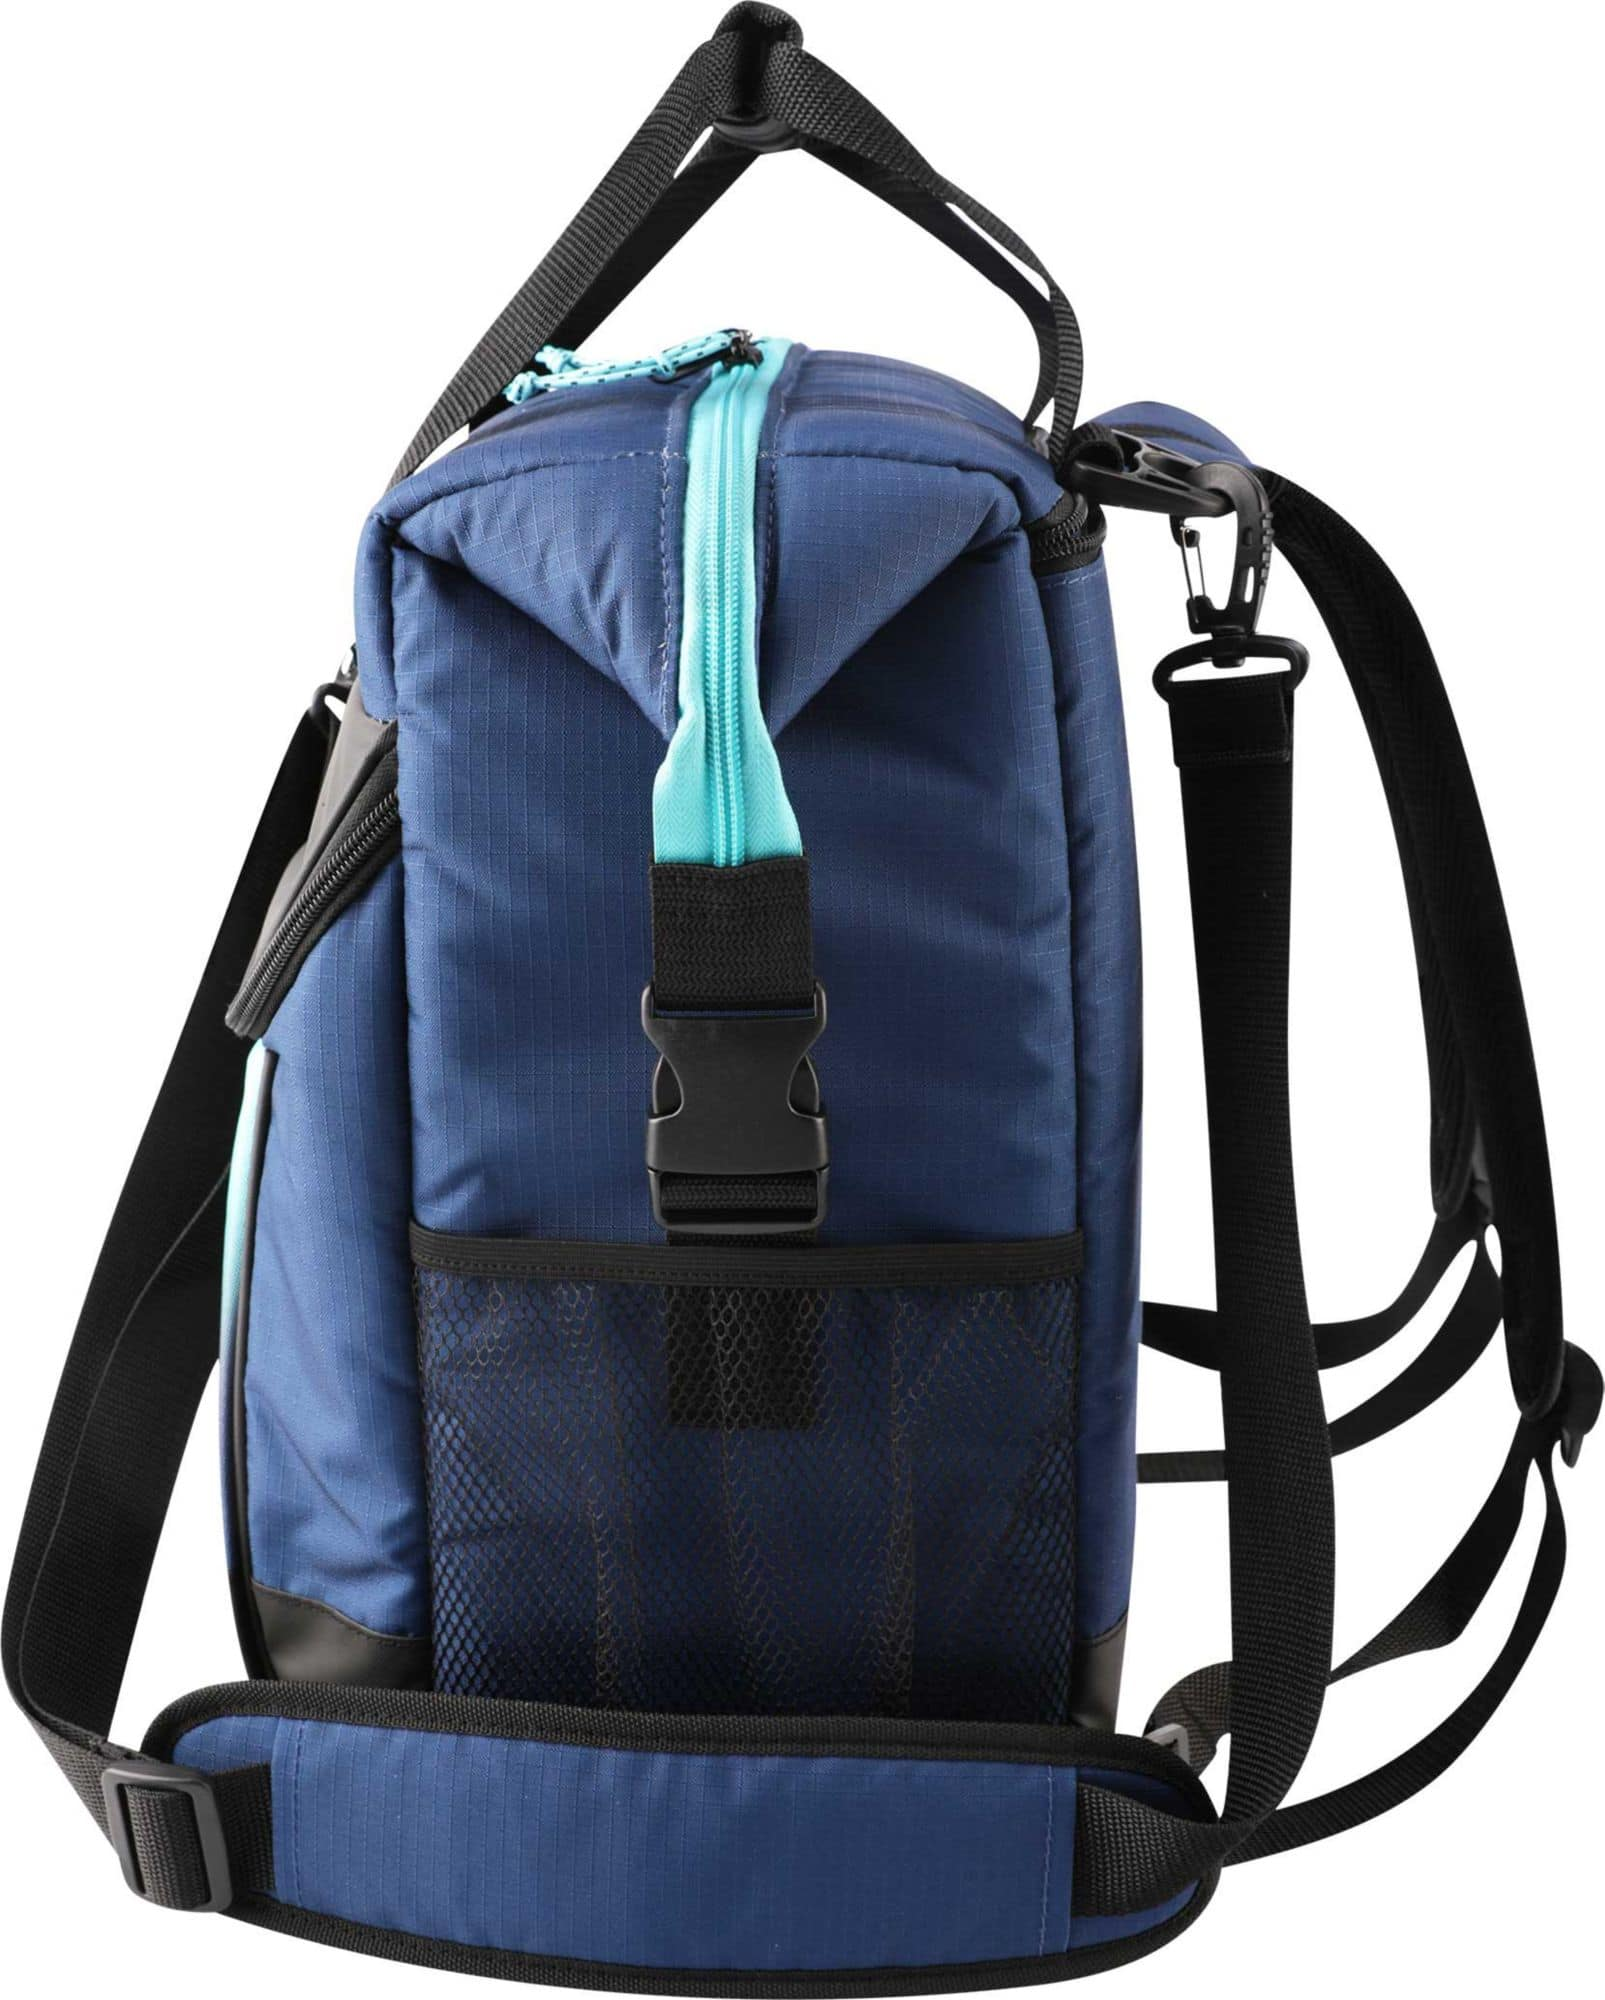 Igloo Backpack Coolers - 28 can for $31.97 and just a bit smaller hard top cooler for $27.97